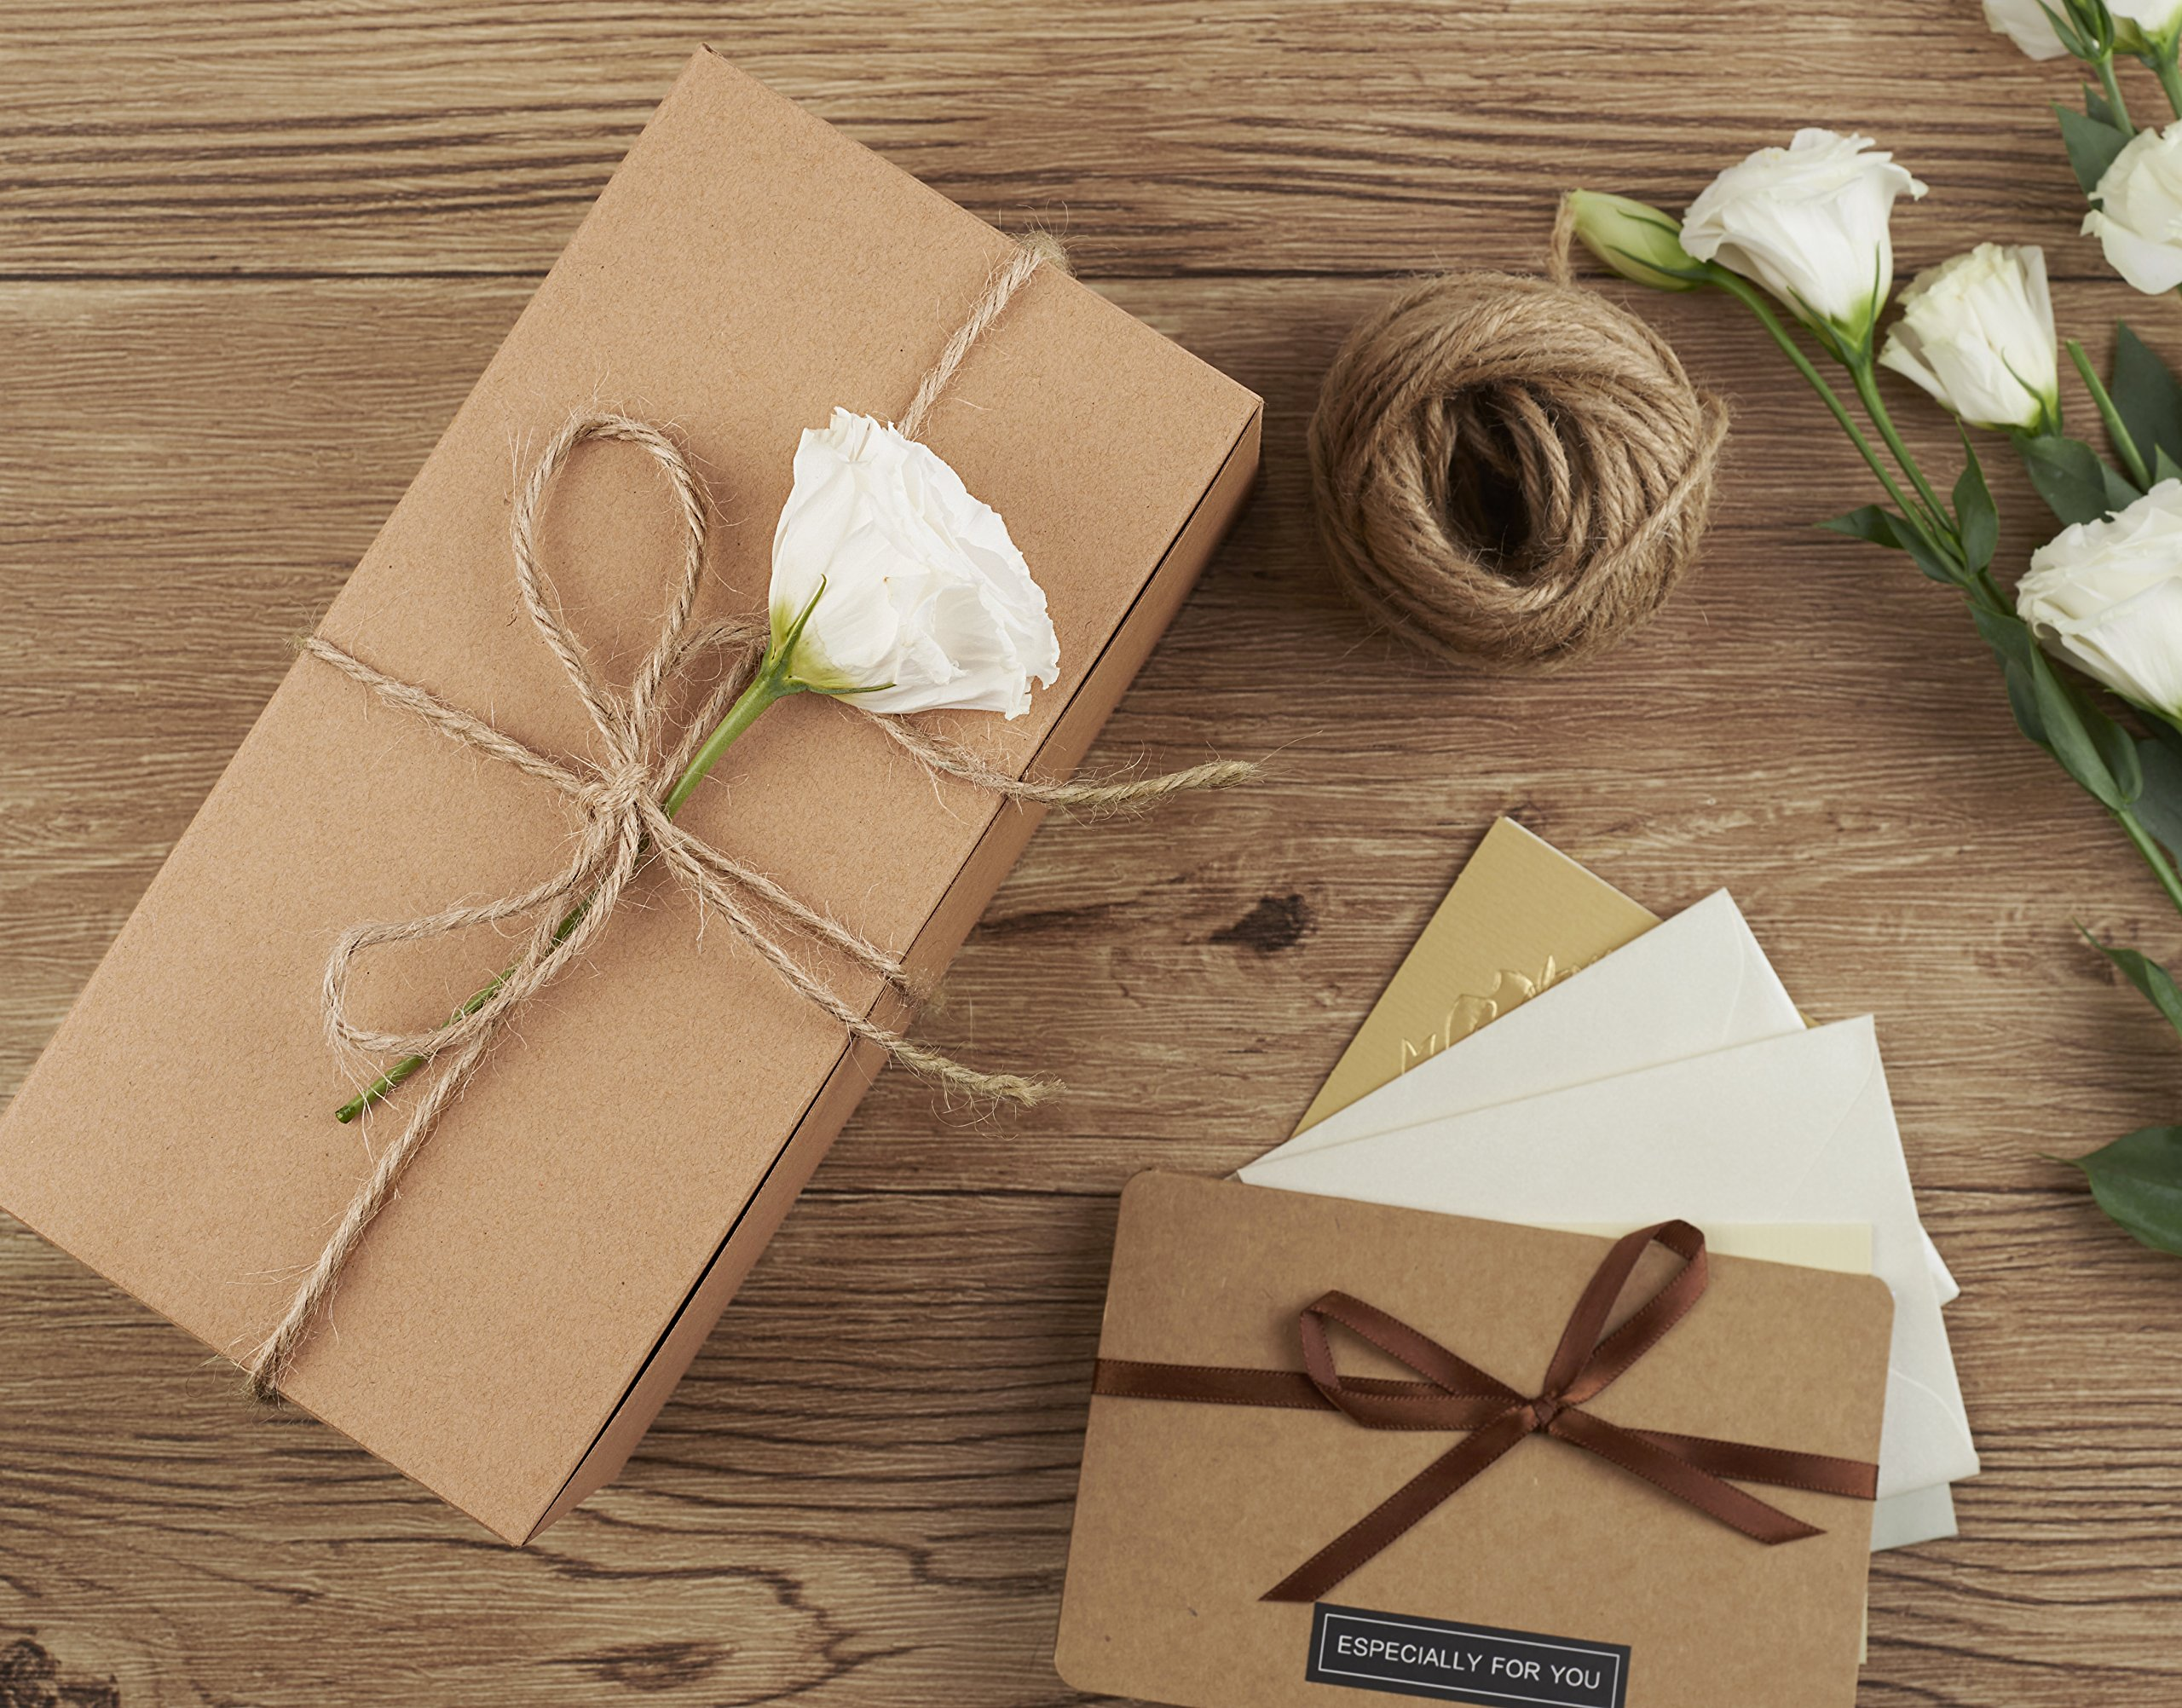 Mesha Recycled Gift Boxes 9x45x45 Inch Brown Paper Boxes 10pcs